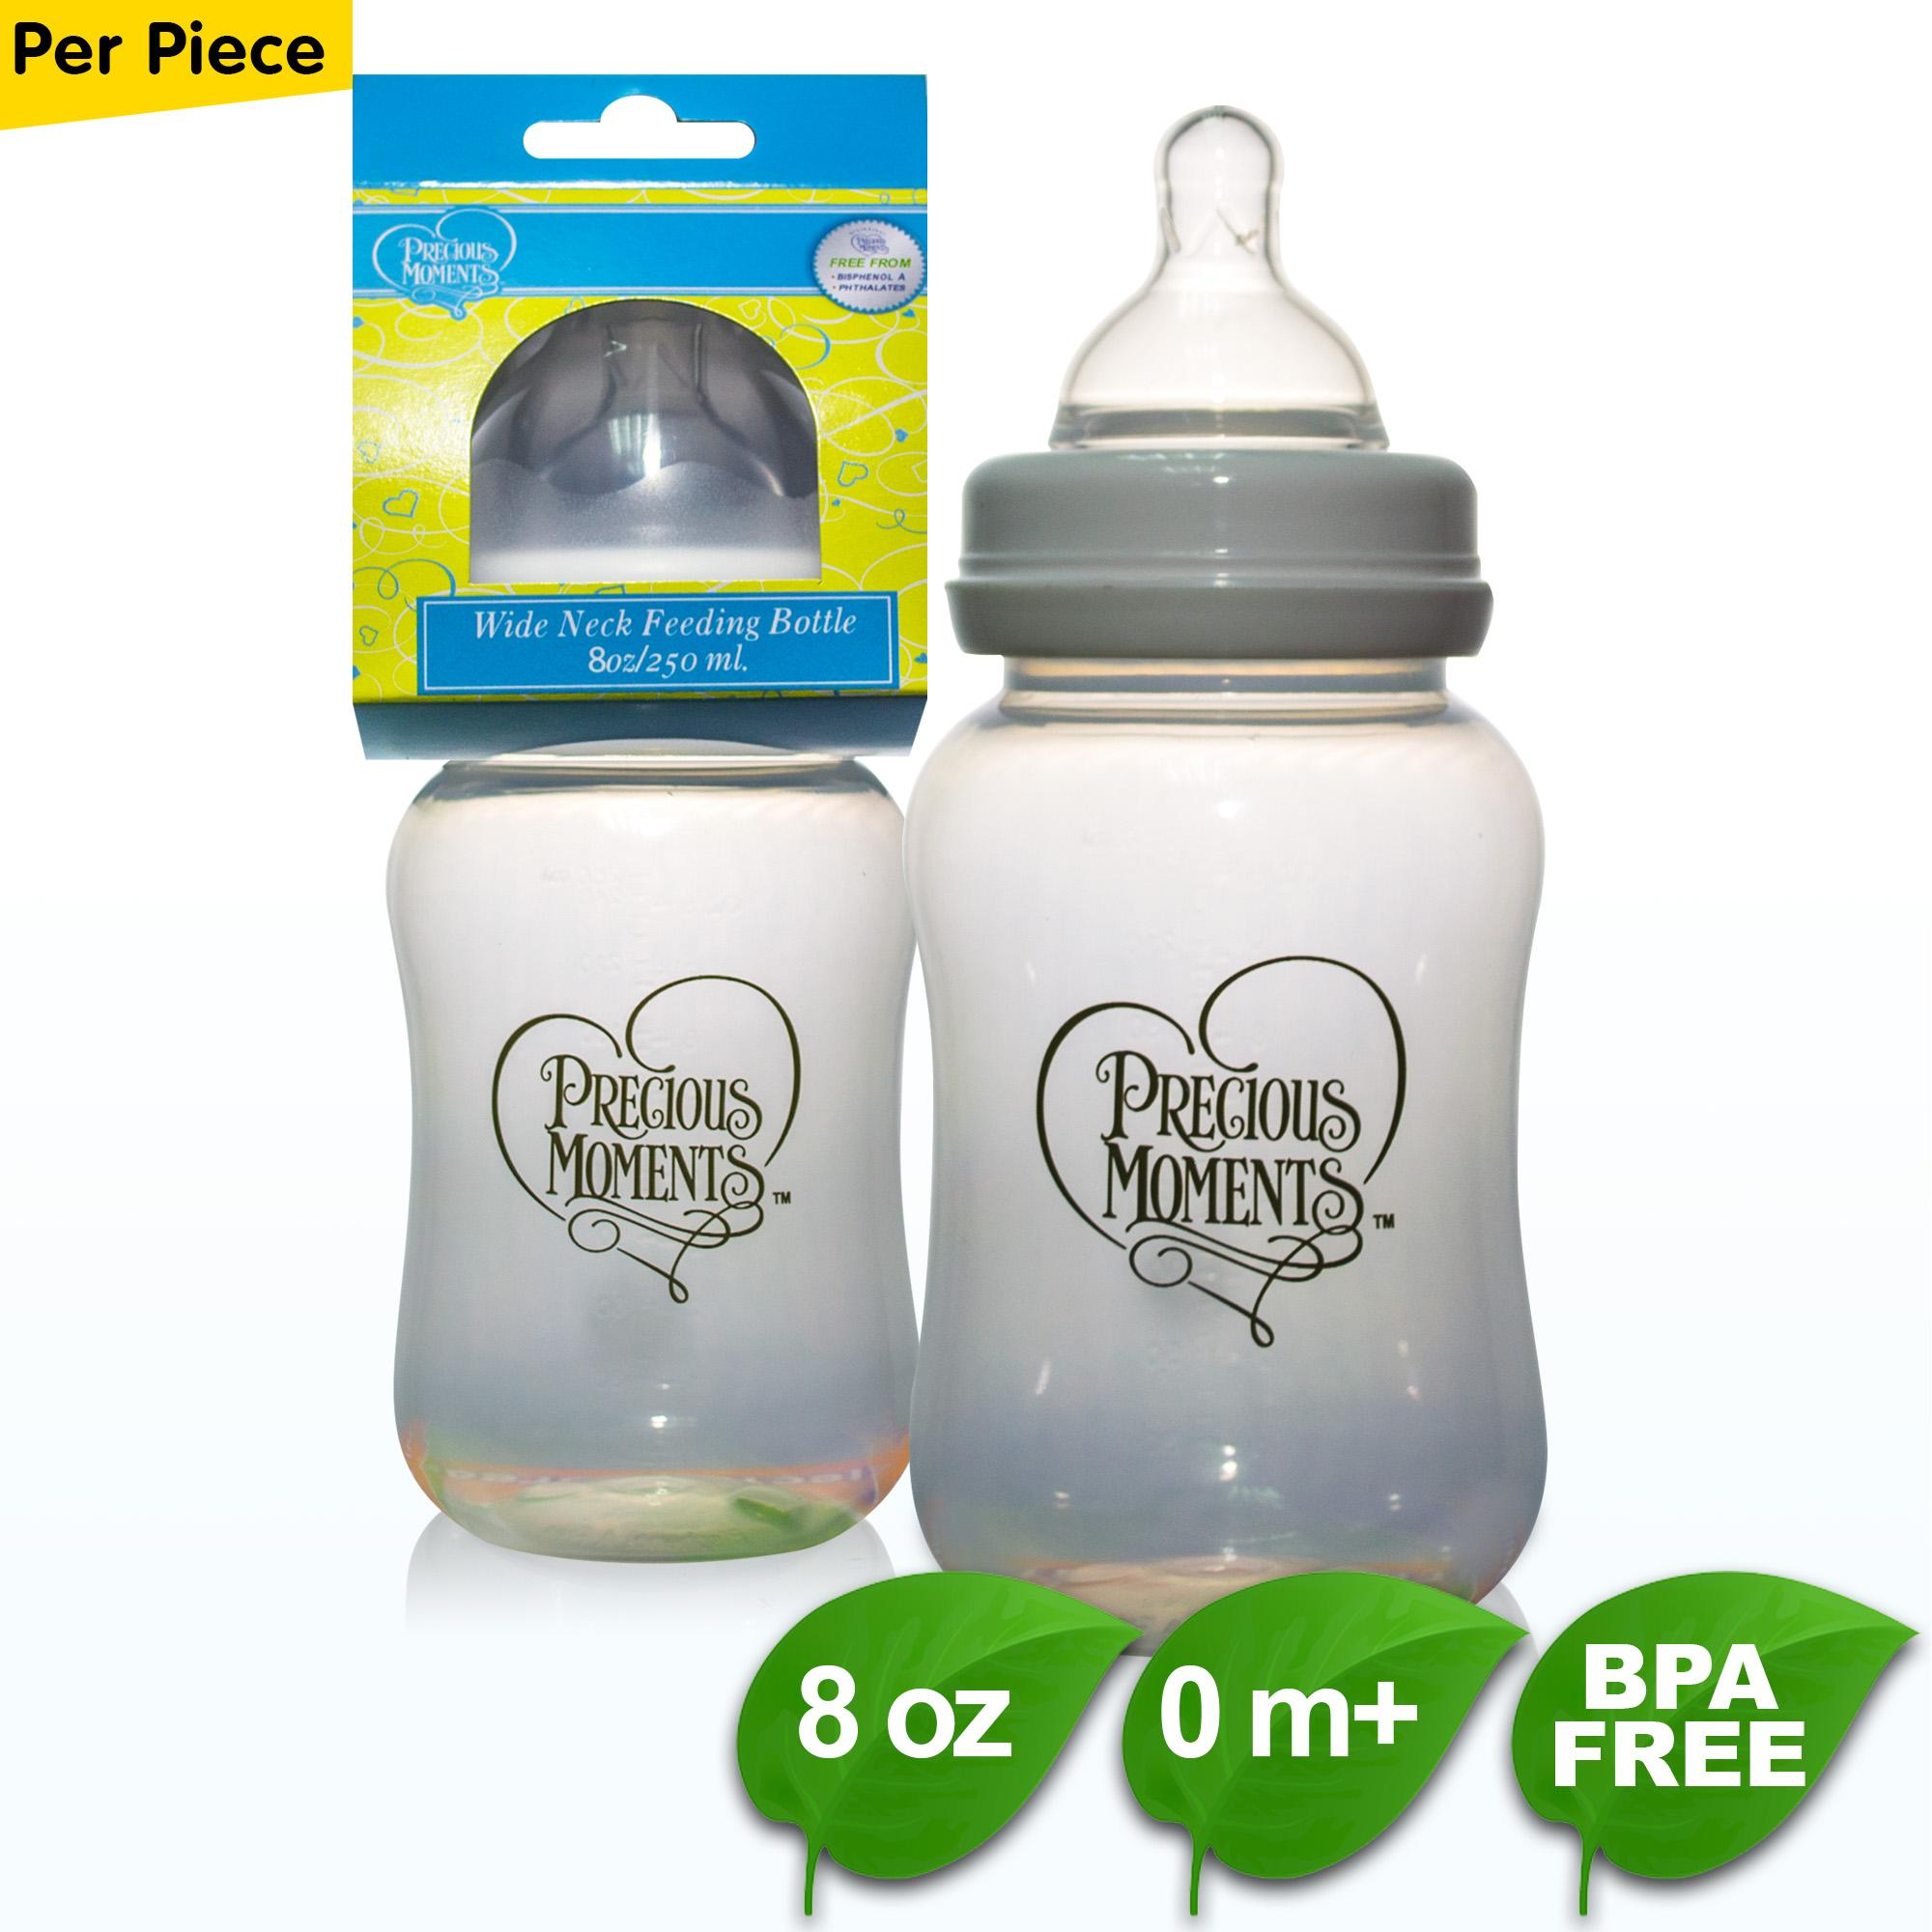 Bpe Free Precious Moments 8oz Wide Neck Feeding Bottle By Coral Babies.